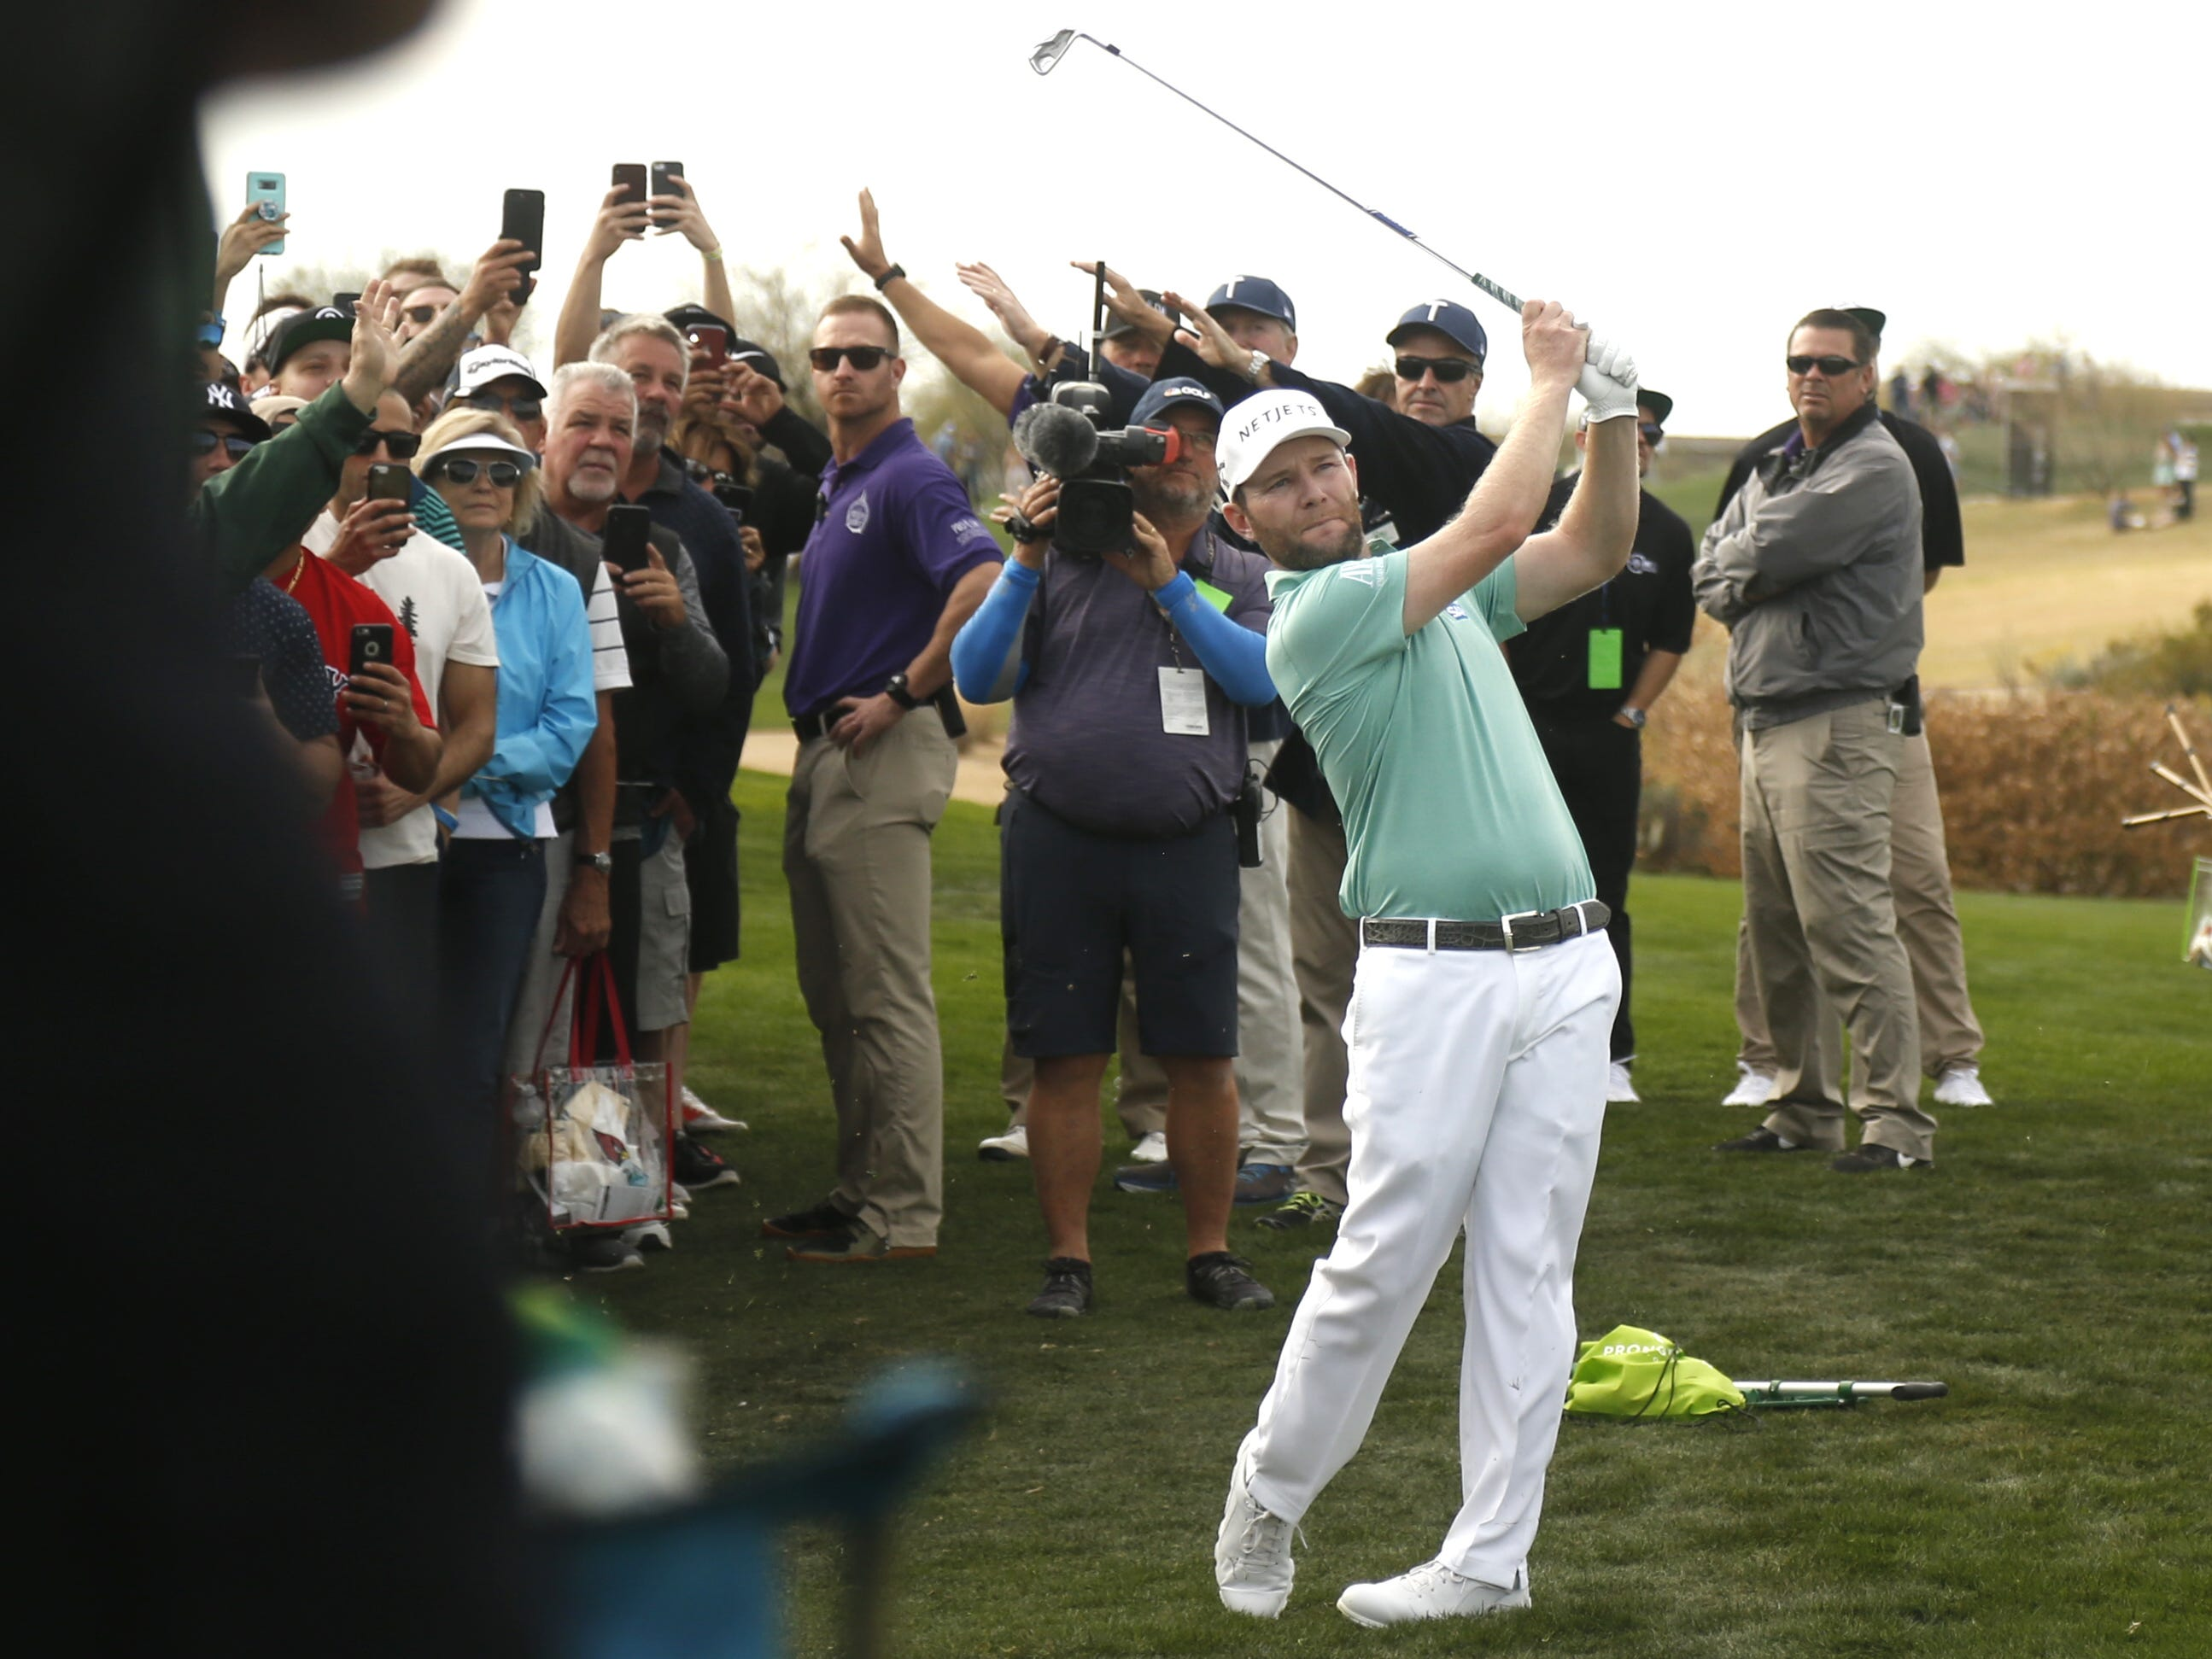 Branden Grace hits from a drop on the 15th hole during the third round of the Waste Management Phoenix Open at TPC Scottsdale in Scottsdale, Ariz. on February 2, 2019.